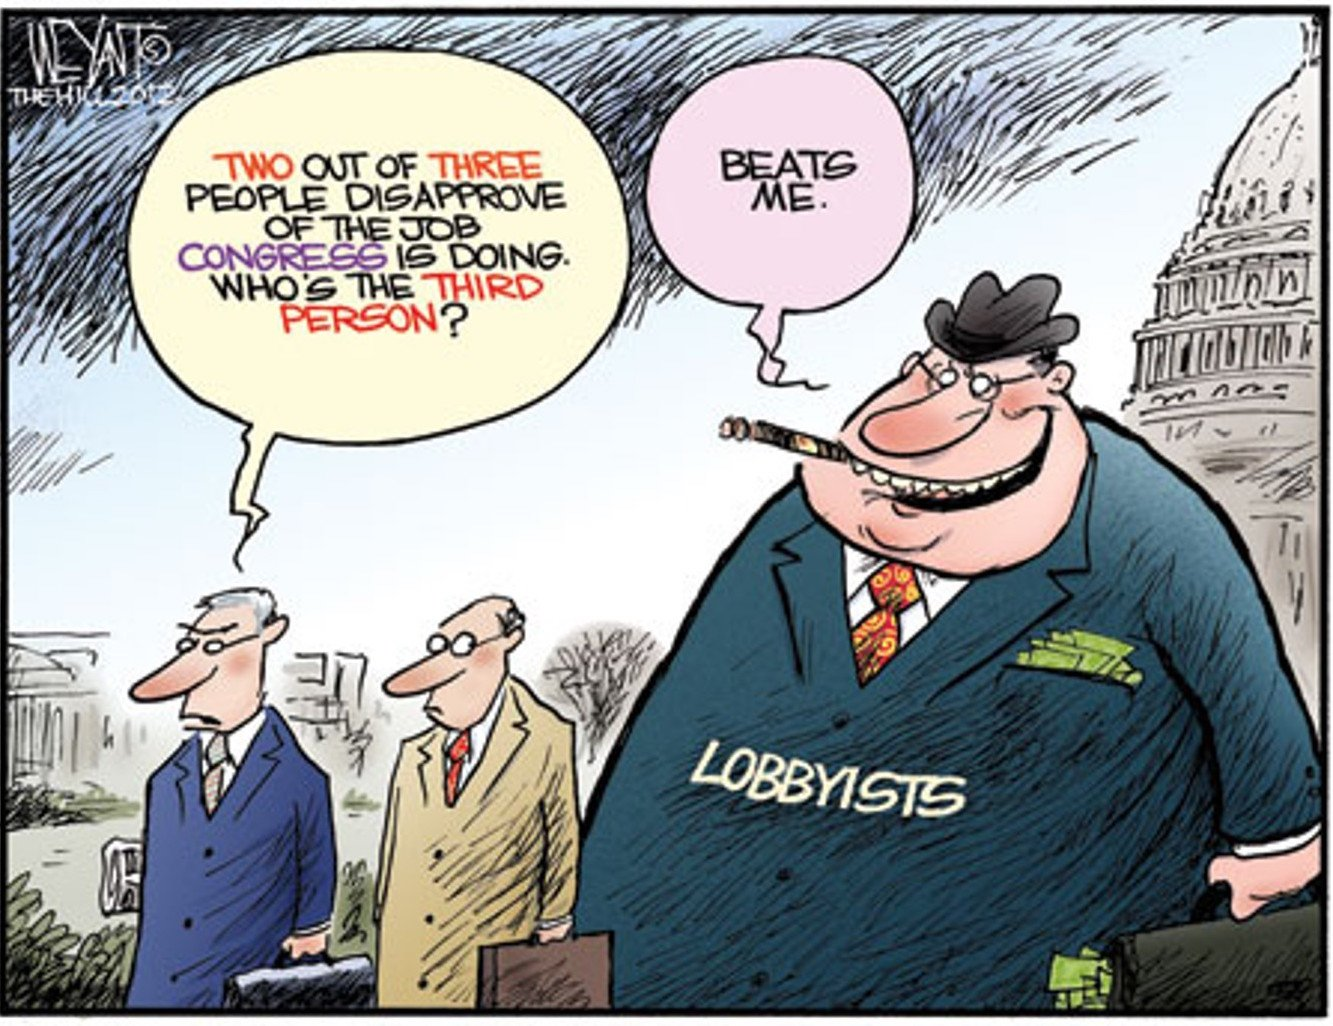 lobbyist essays Do my essay hire writer log in contact us government unit 5: lobbying negatively affect, most left-wing essay sample on government unit 5: lobbying.